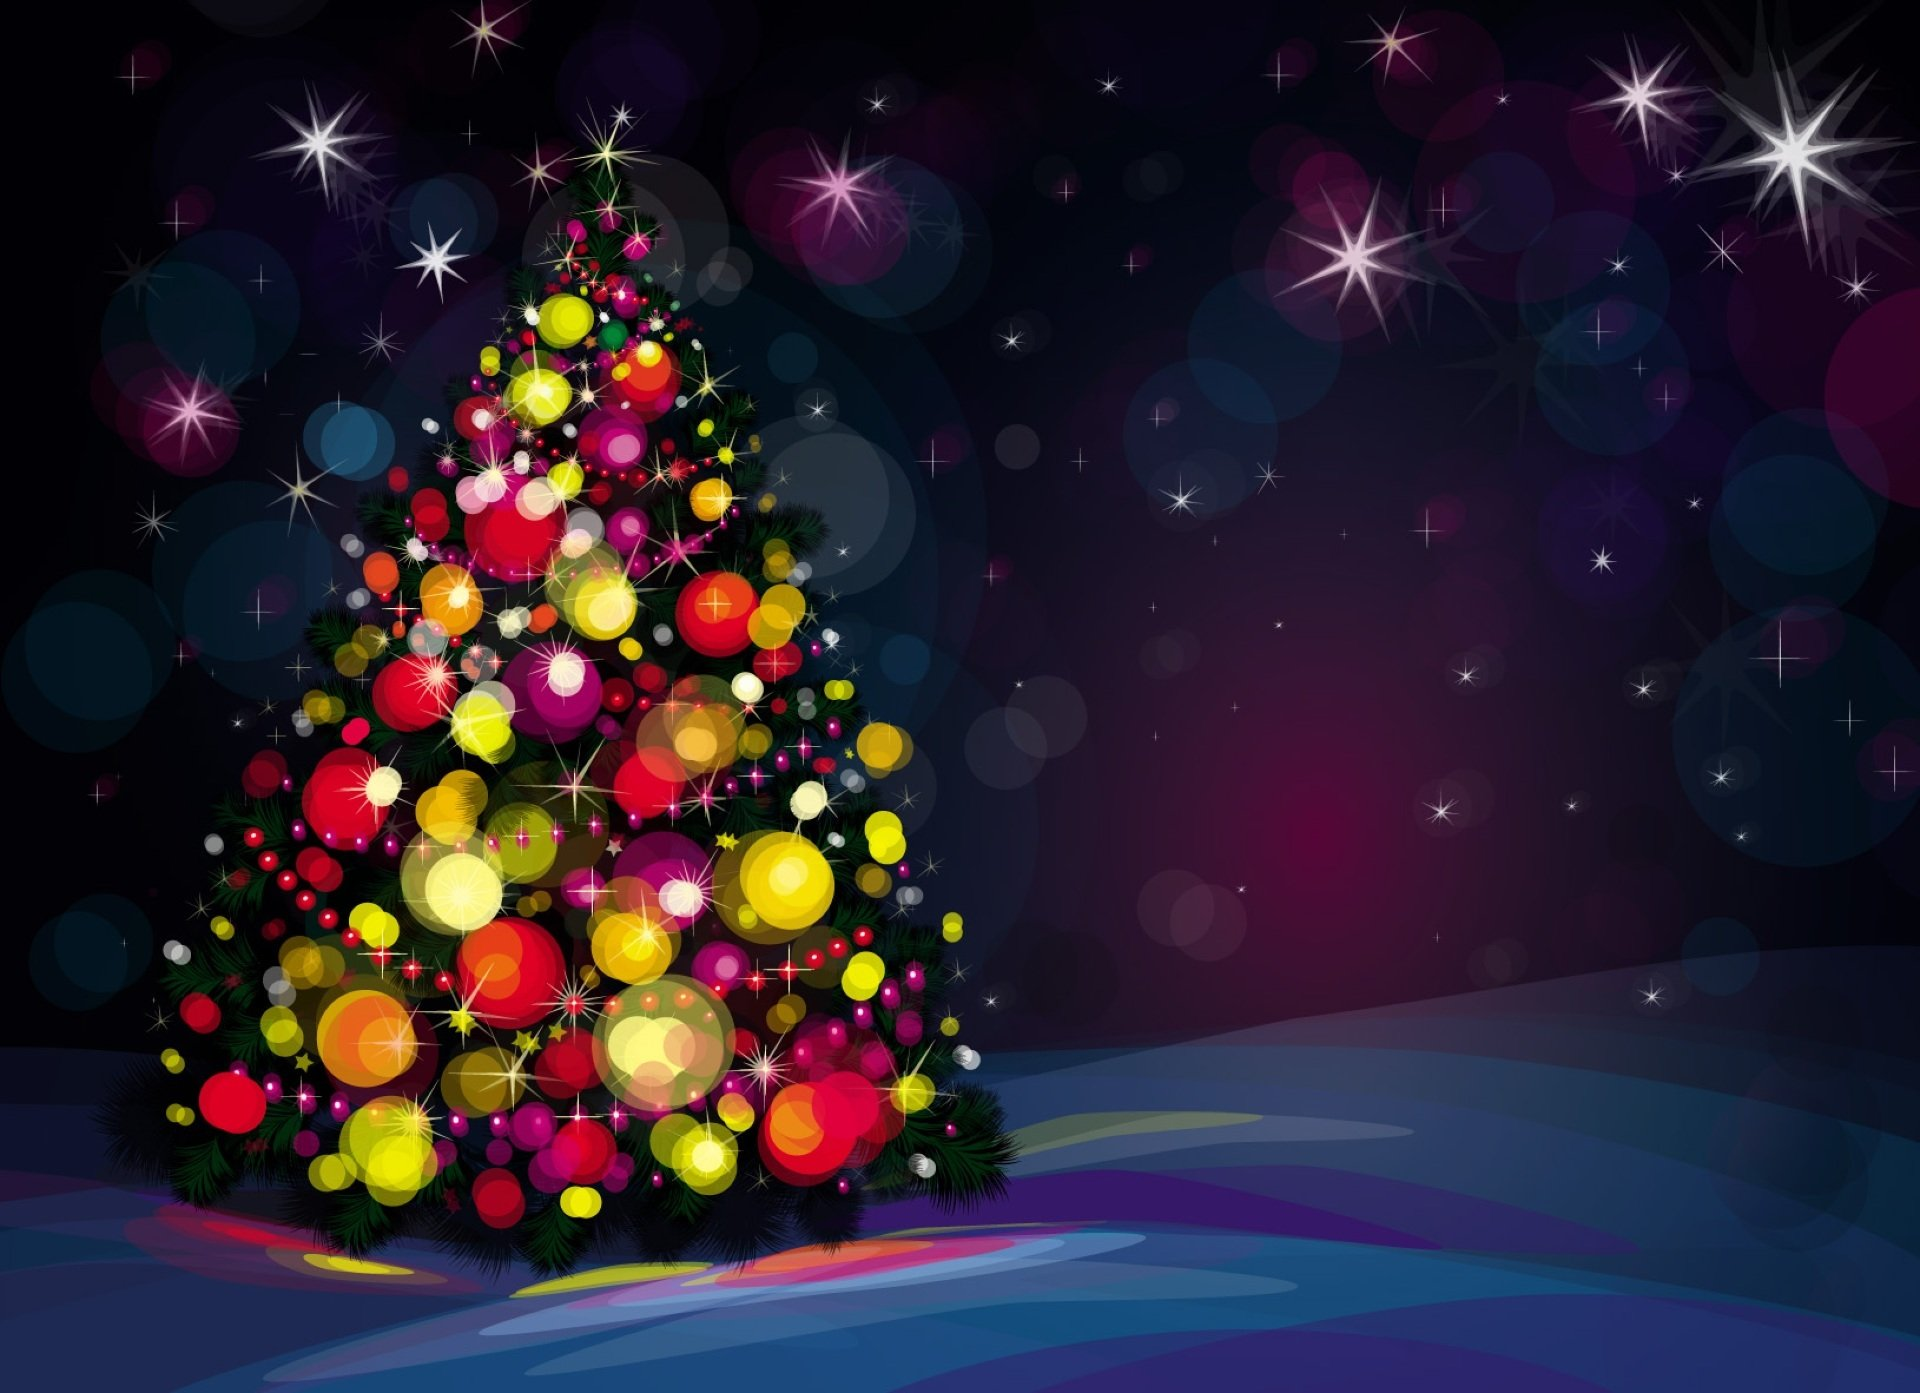 Christmas tree wallpaper image desktop wallpaper with 1920x1393